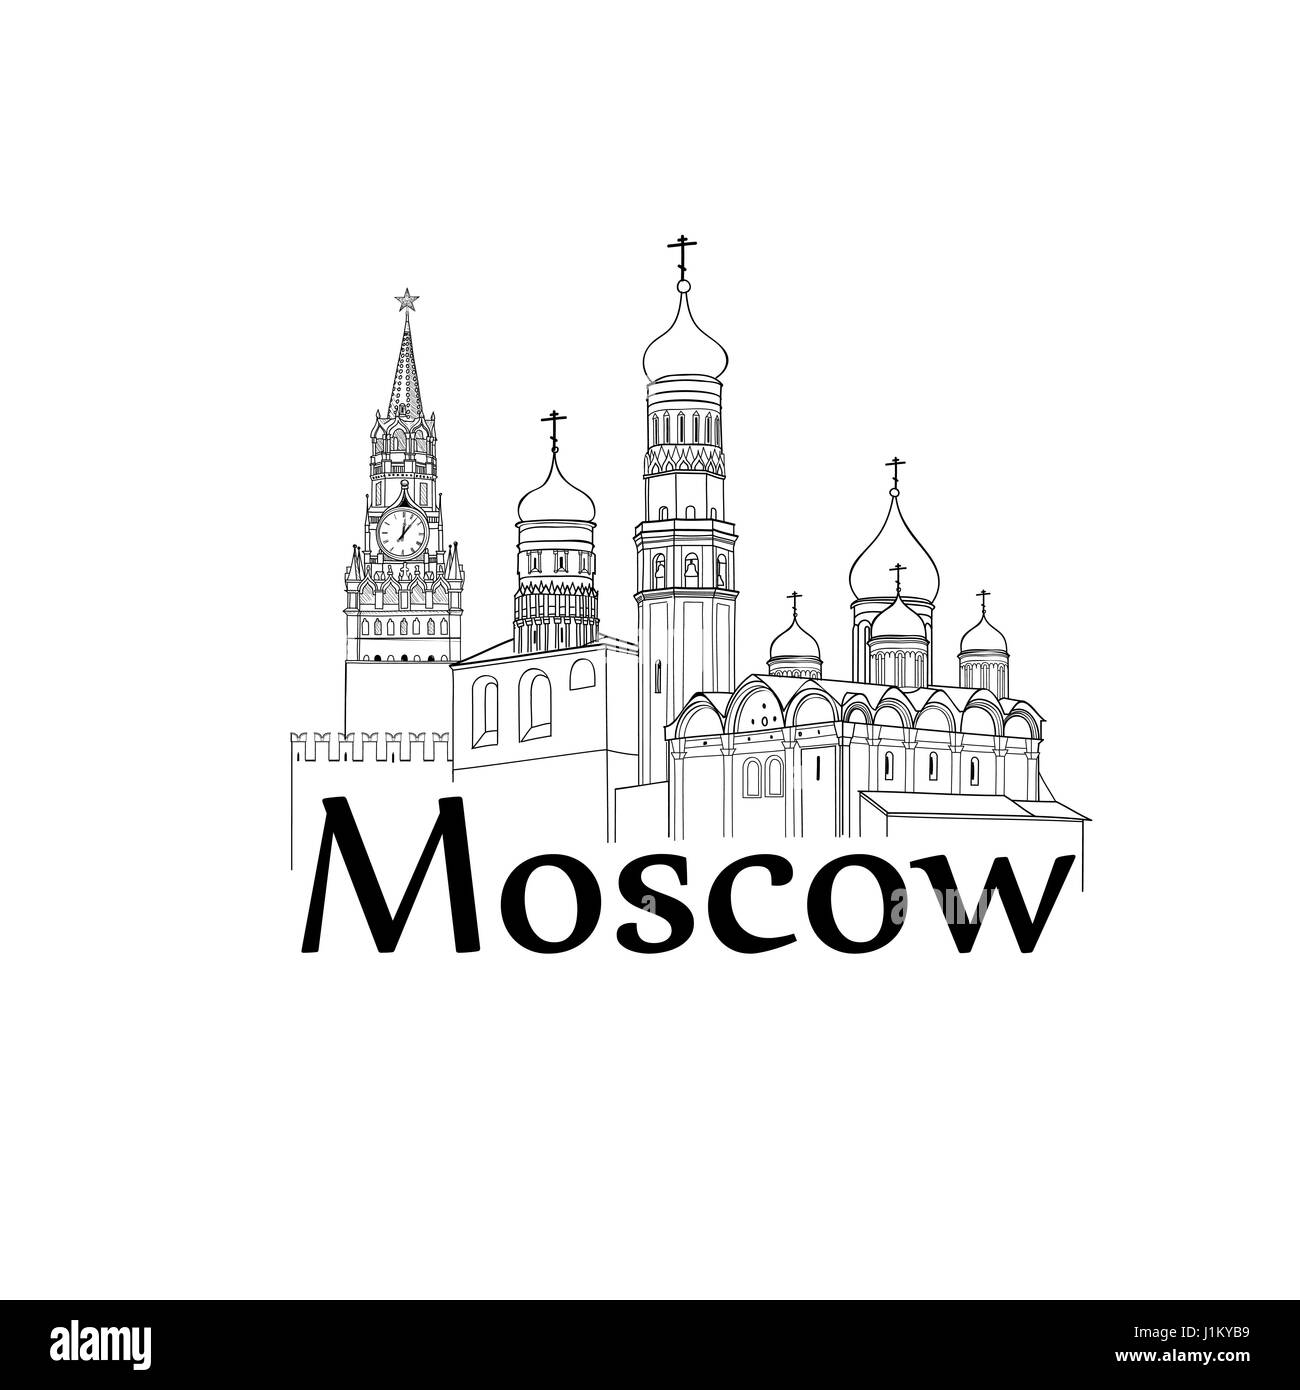 Moscow Kremlin tower and cathedrals. Travel Russia sign. Russian landmarks - Stock Image